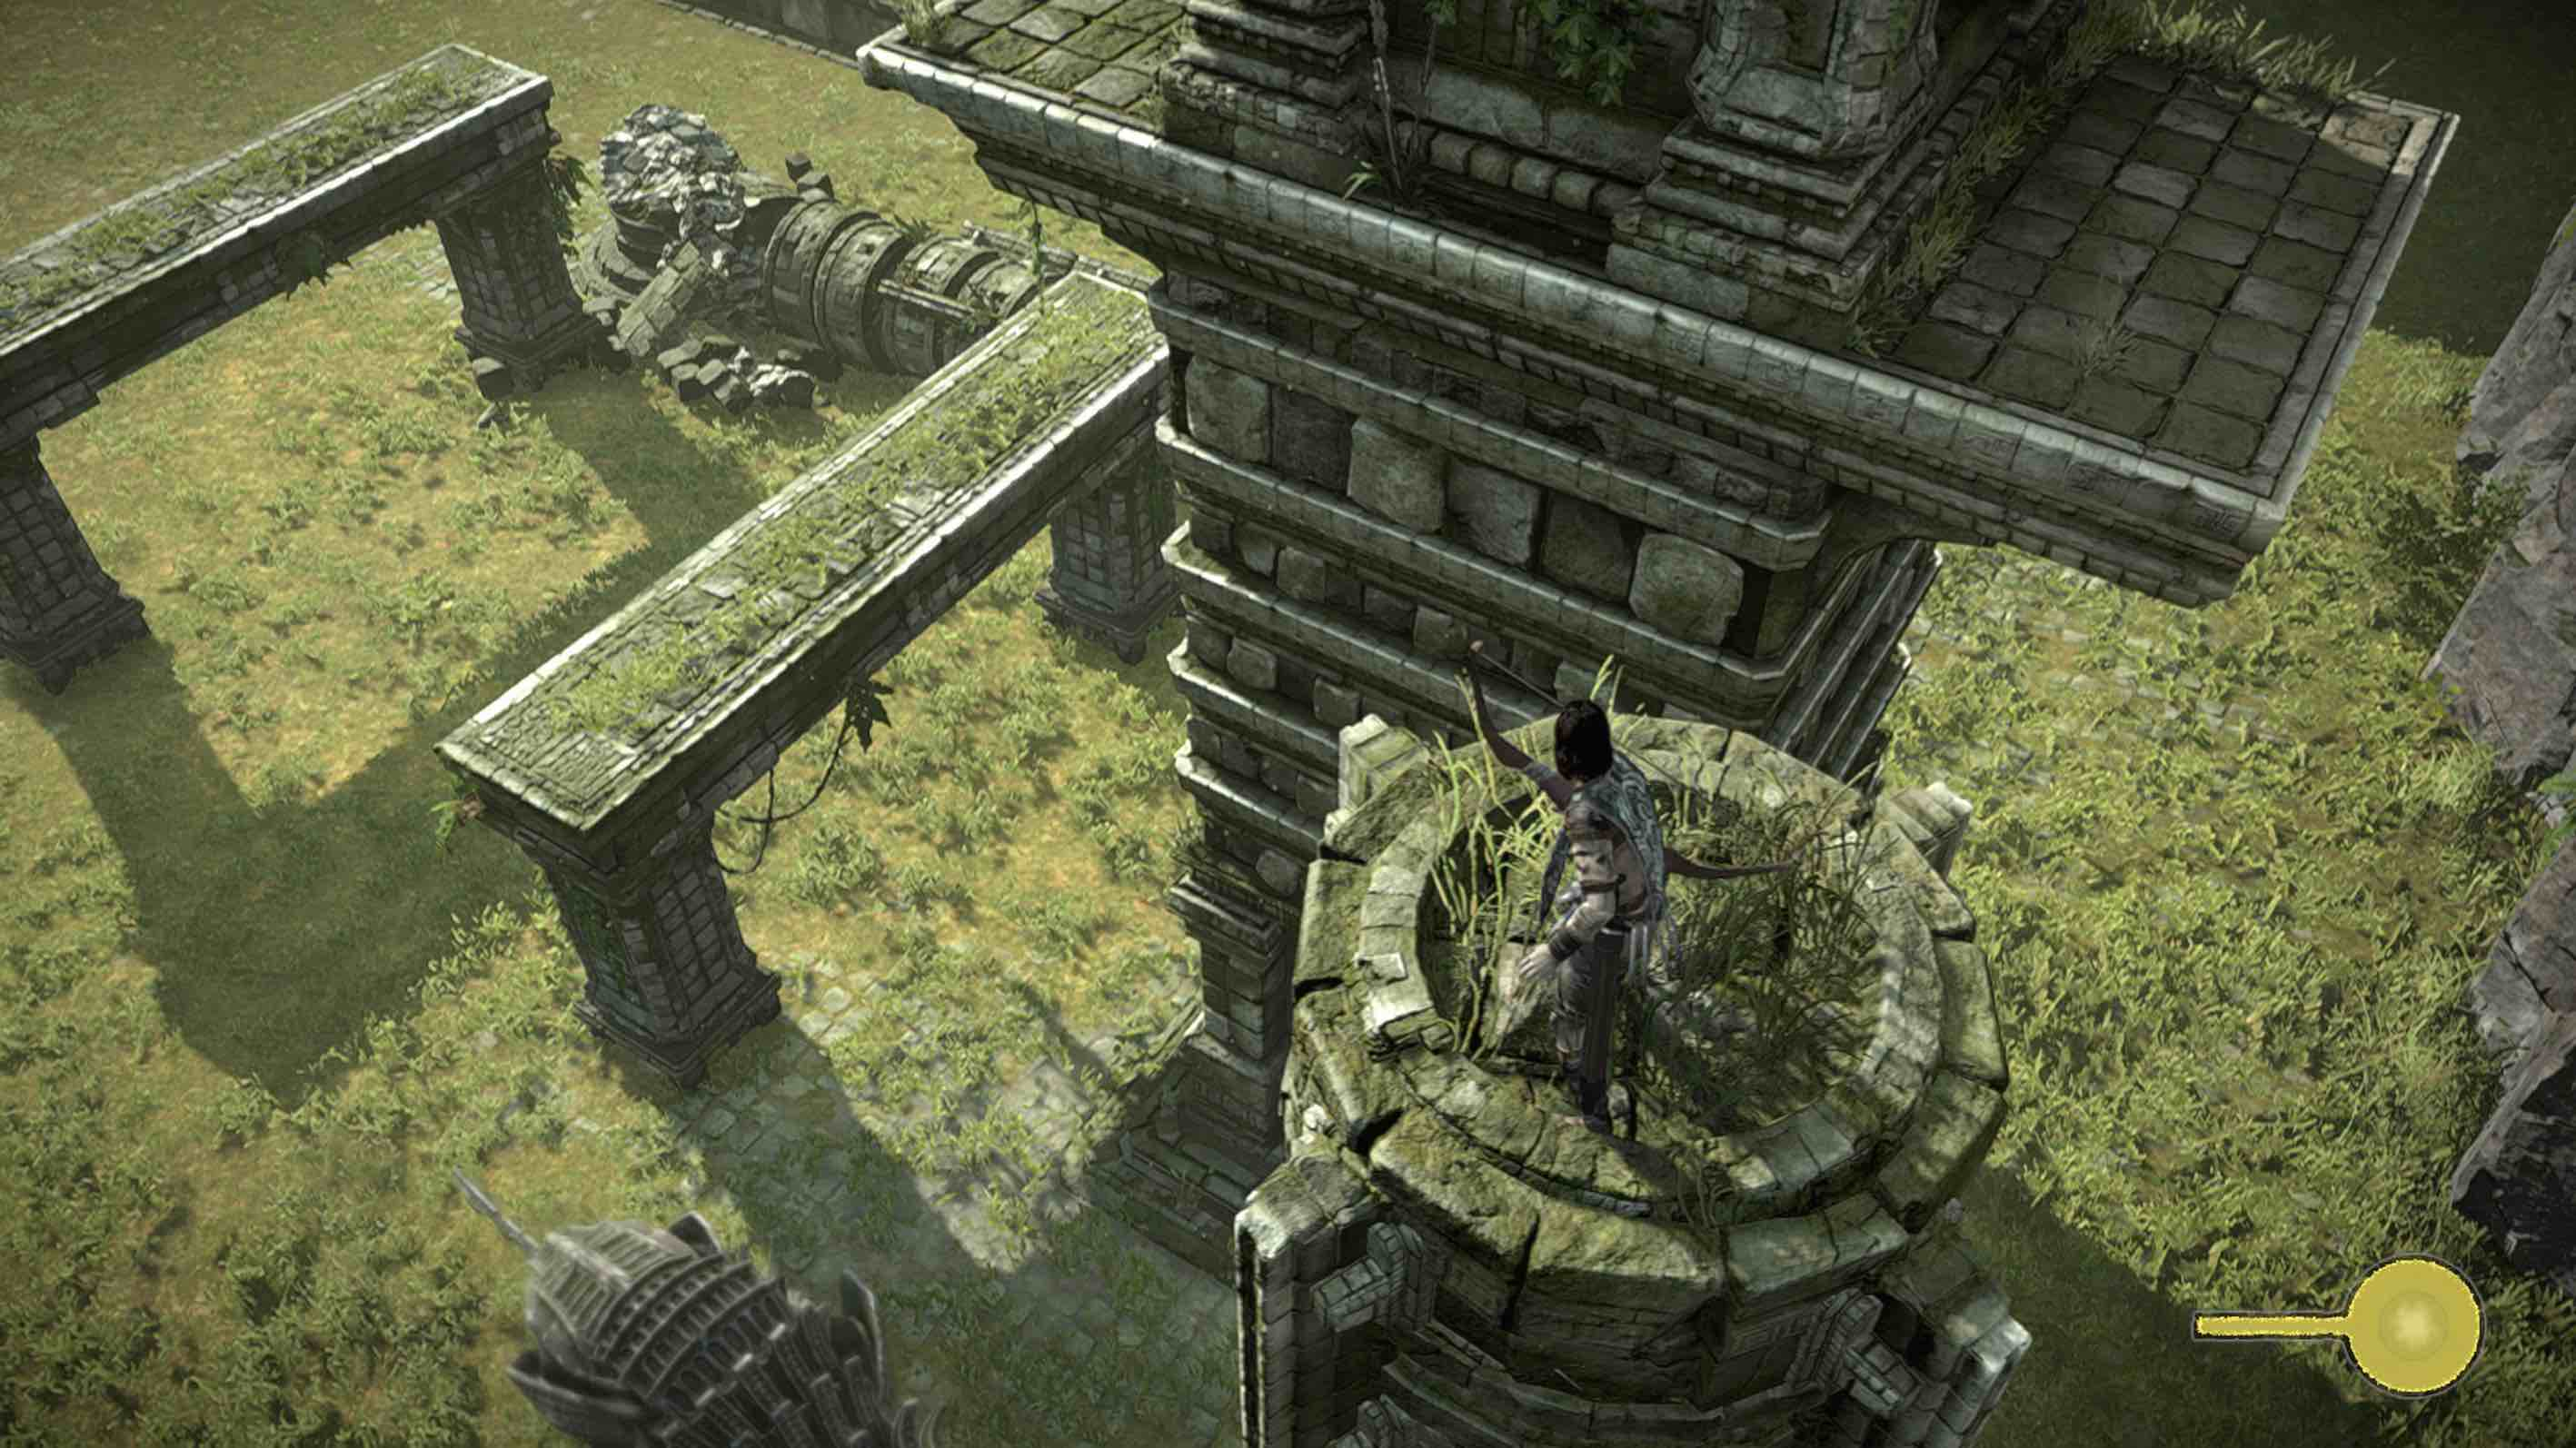 Shadow_of_the_Colossus_Coloso_14_5